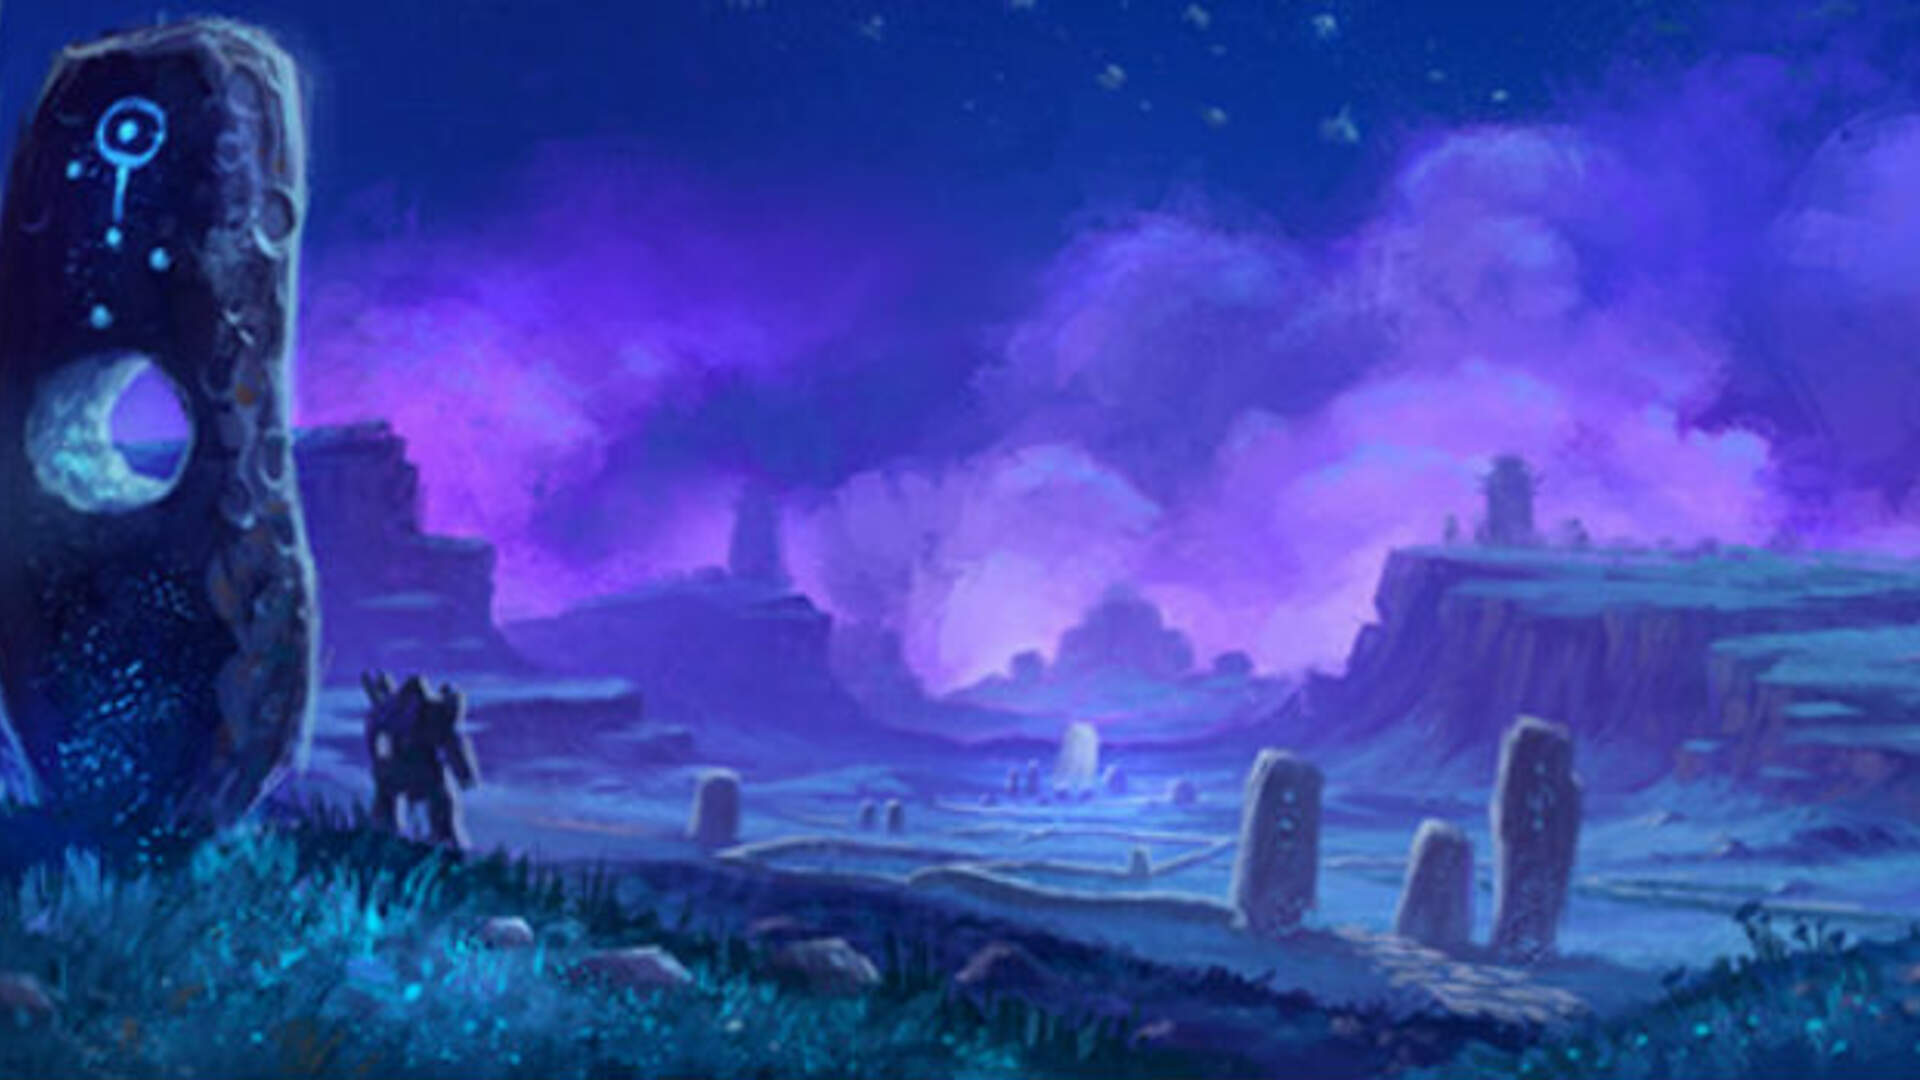 WoW: Blizzard Testing Paid Level 90 Upgrade for Expansion